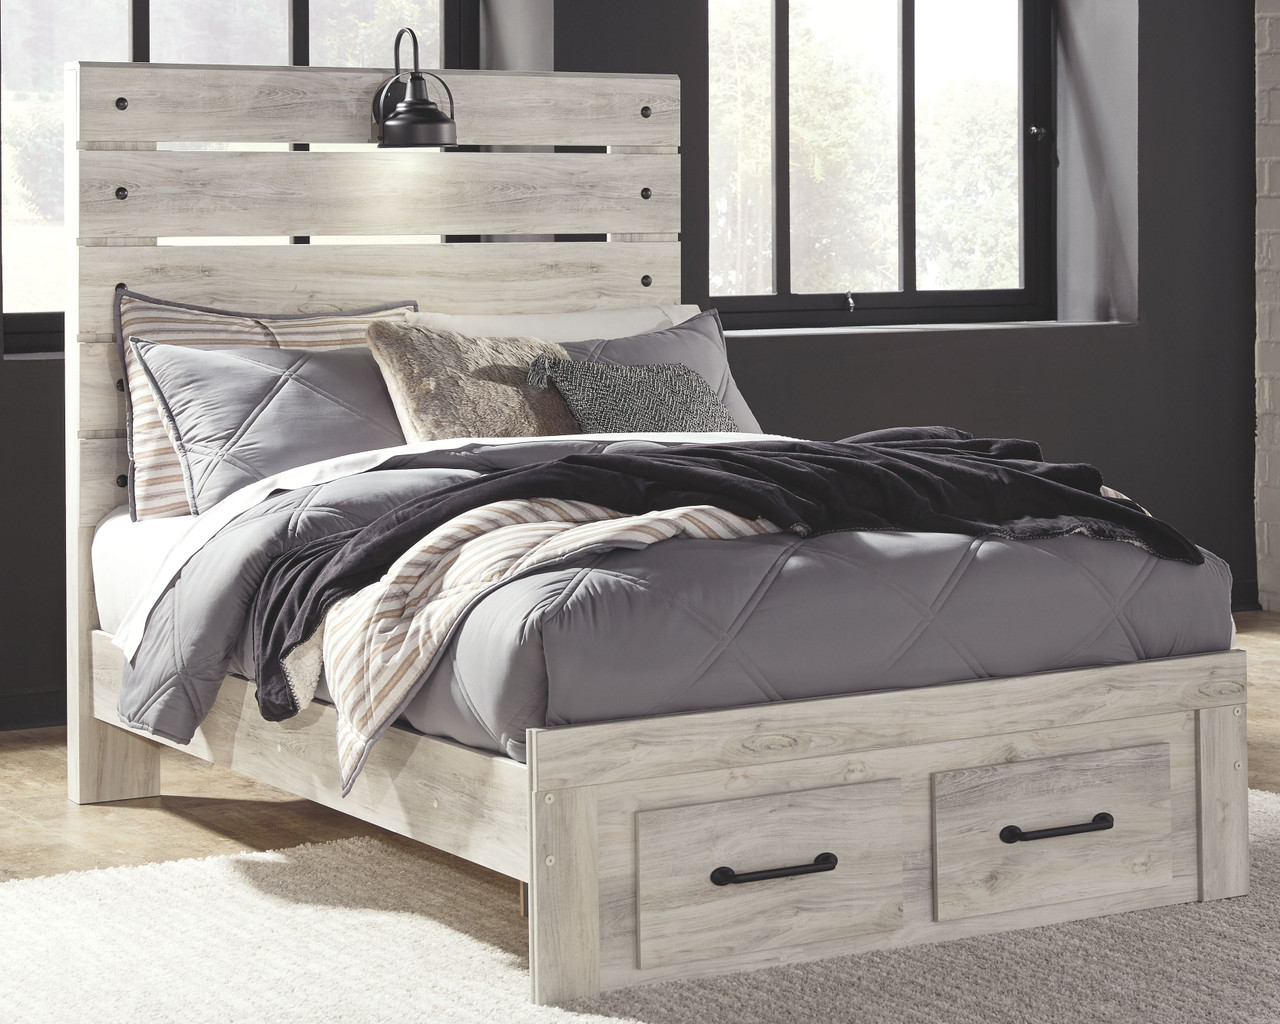 Image of: The Cambeck Whitewash Full Panel Bed With Storage Available At Nashco Furniture And Mattress Serving Nashville Tn